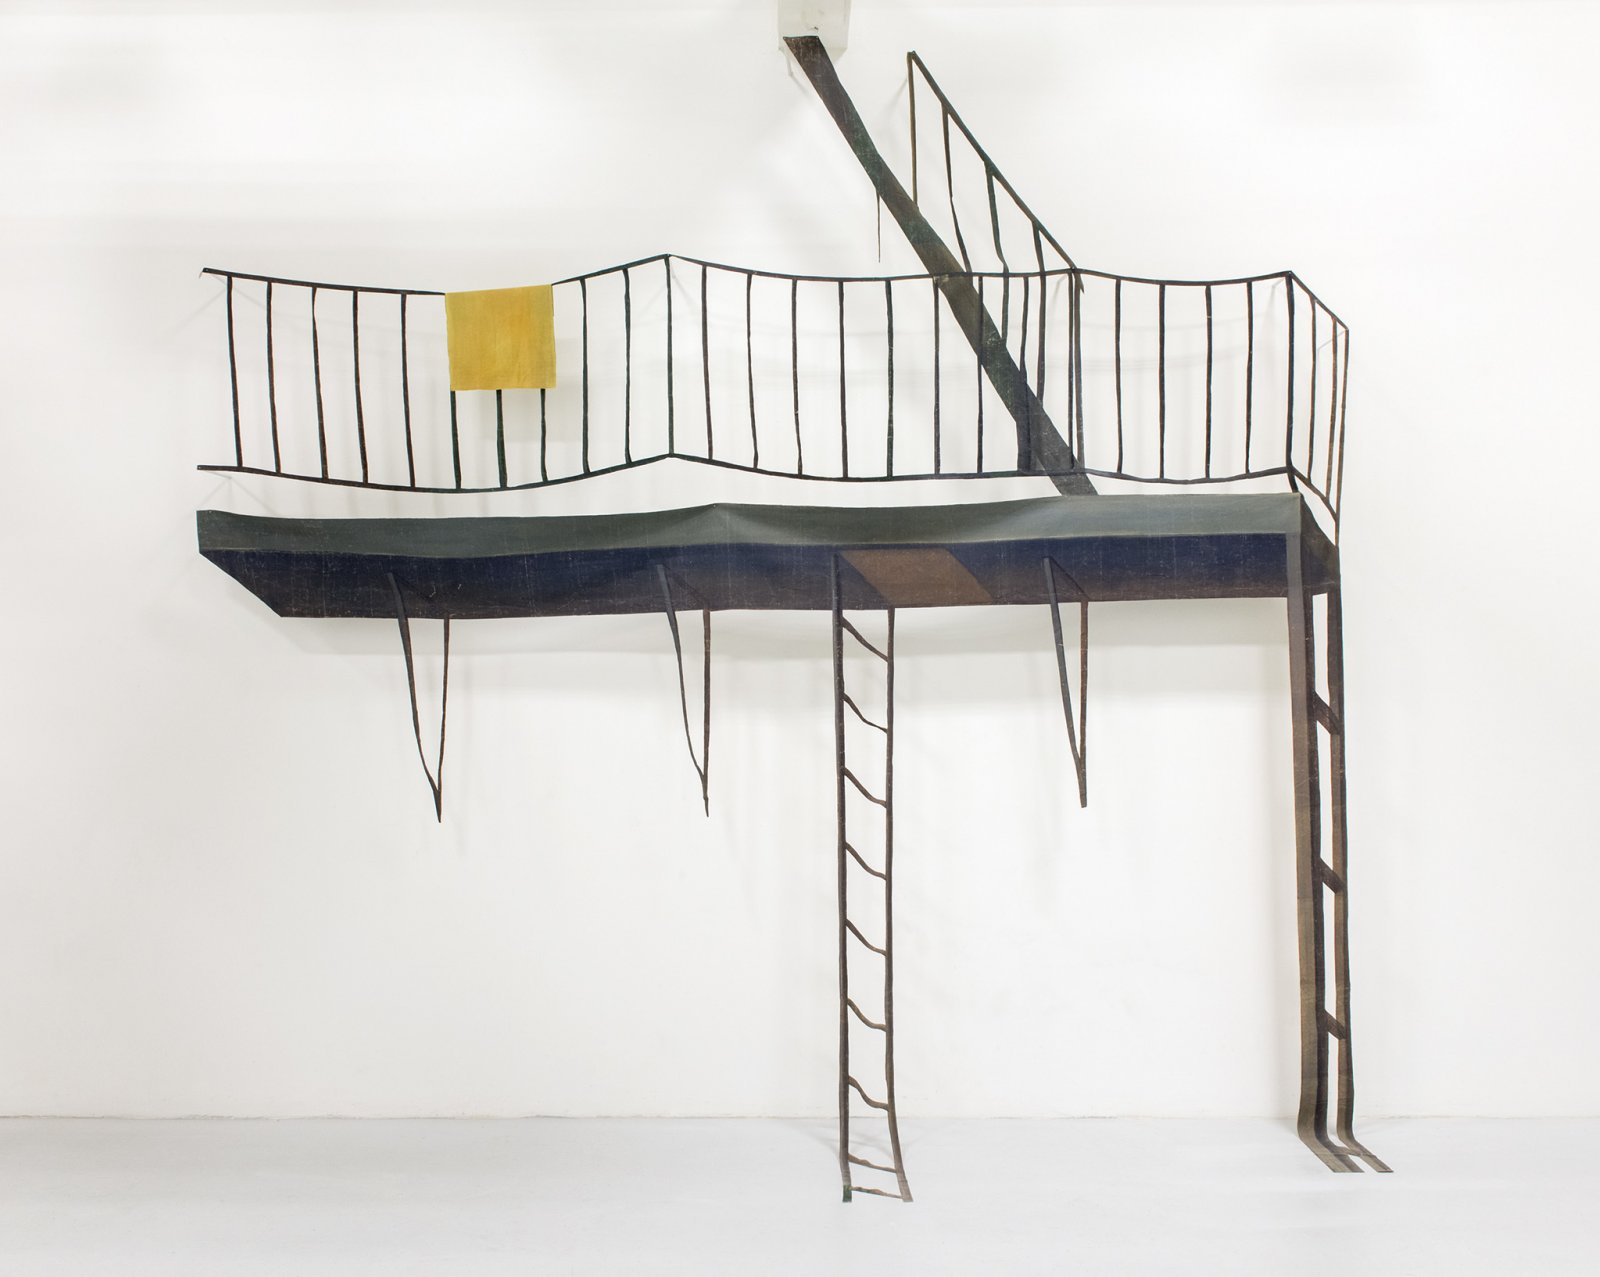 Geoffrey Farmer, Fire Escape with Window, 2016, theatre backdrop, wood, 145 x 144 in. (368 x 365 cm)